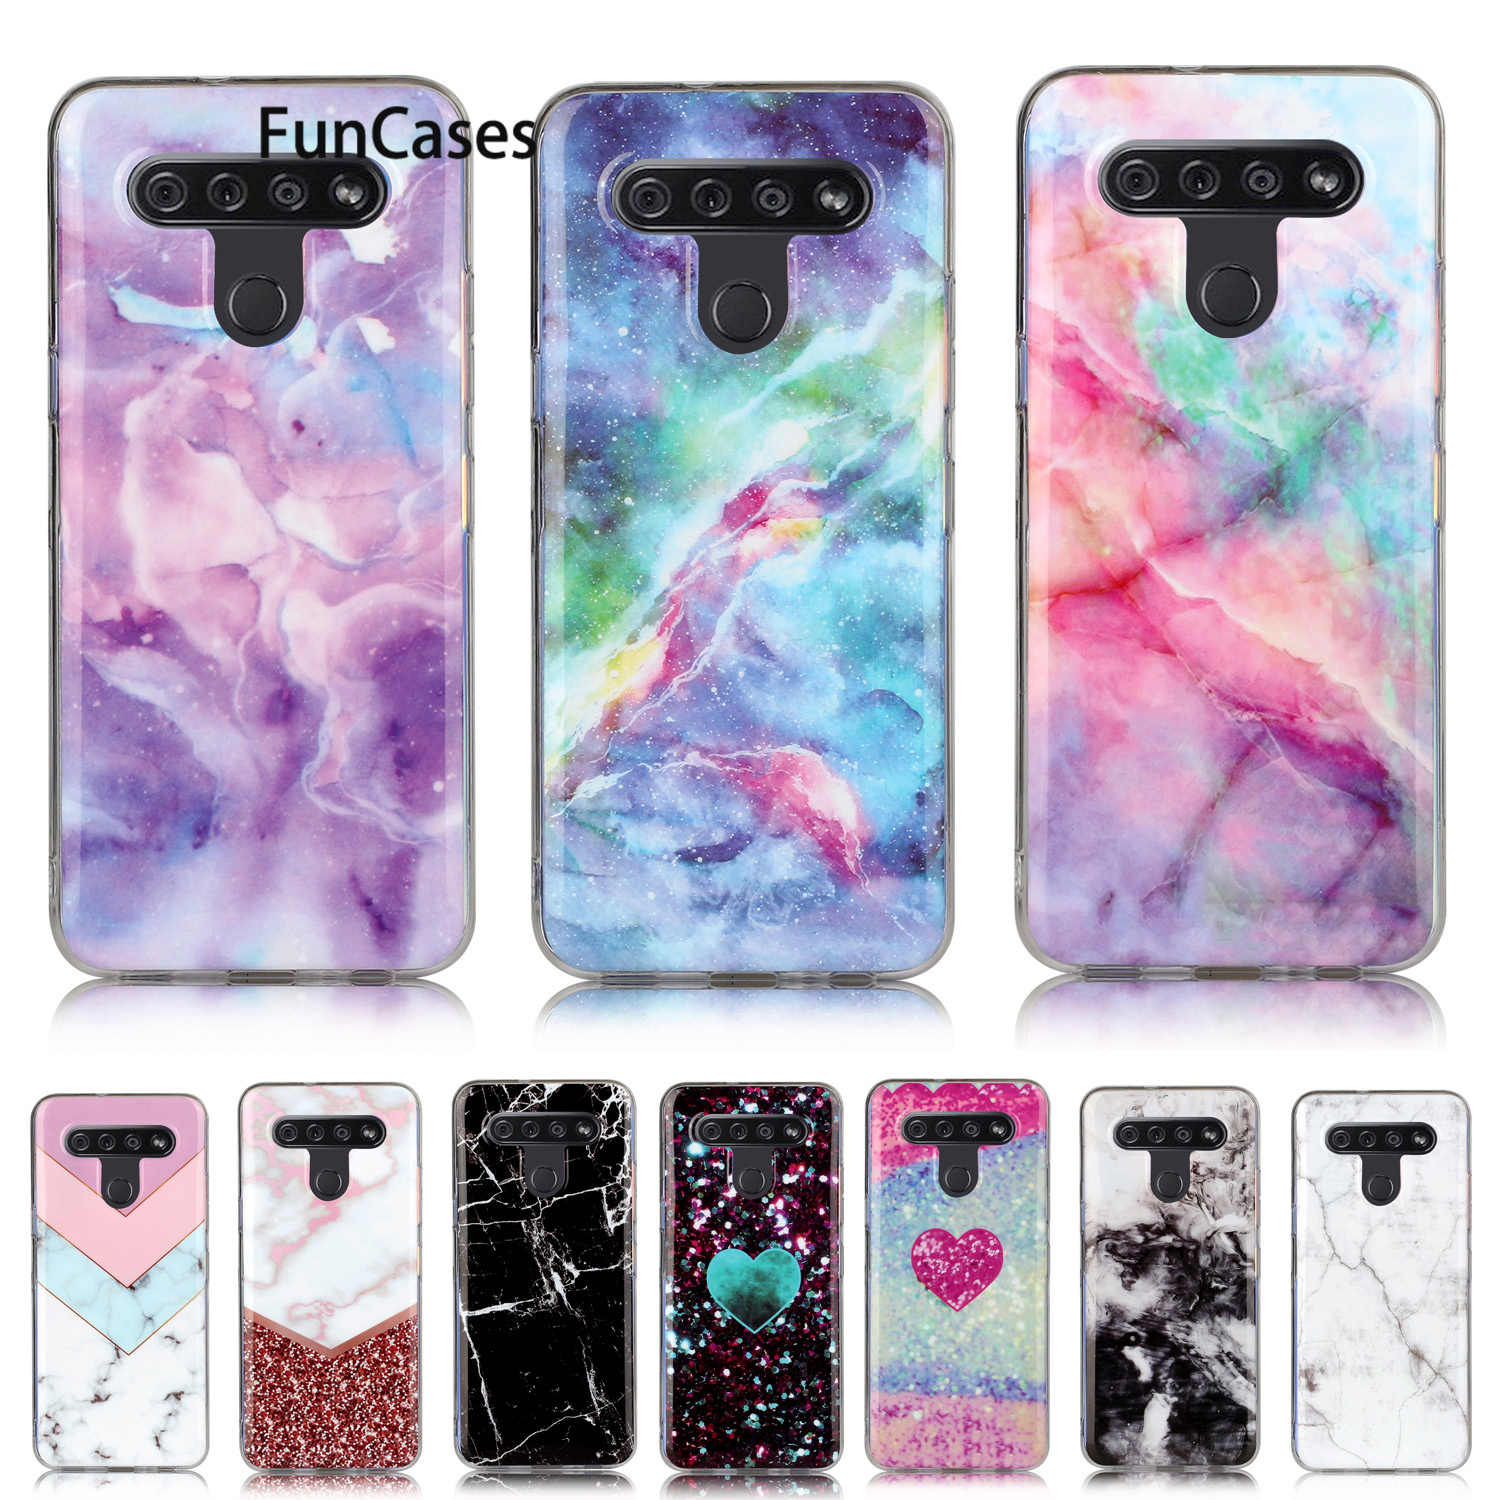 Colorful Heavy Cases For hoesje LG V60 Telephone Accessories Back Cover Soft TPU Shell sFor Fundas LG funda K51 Stylo 6 mobile